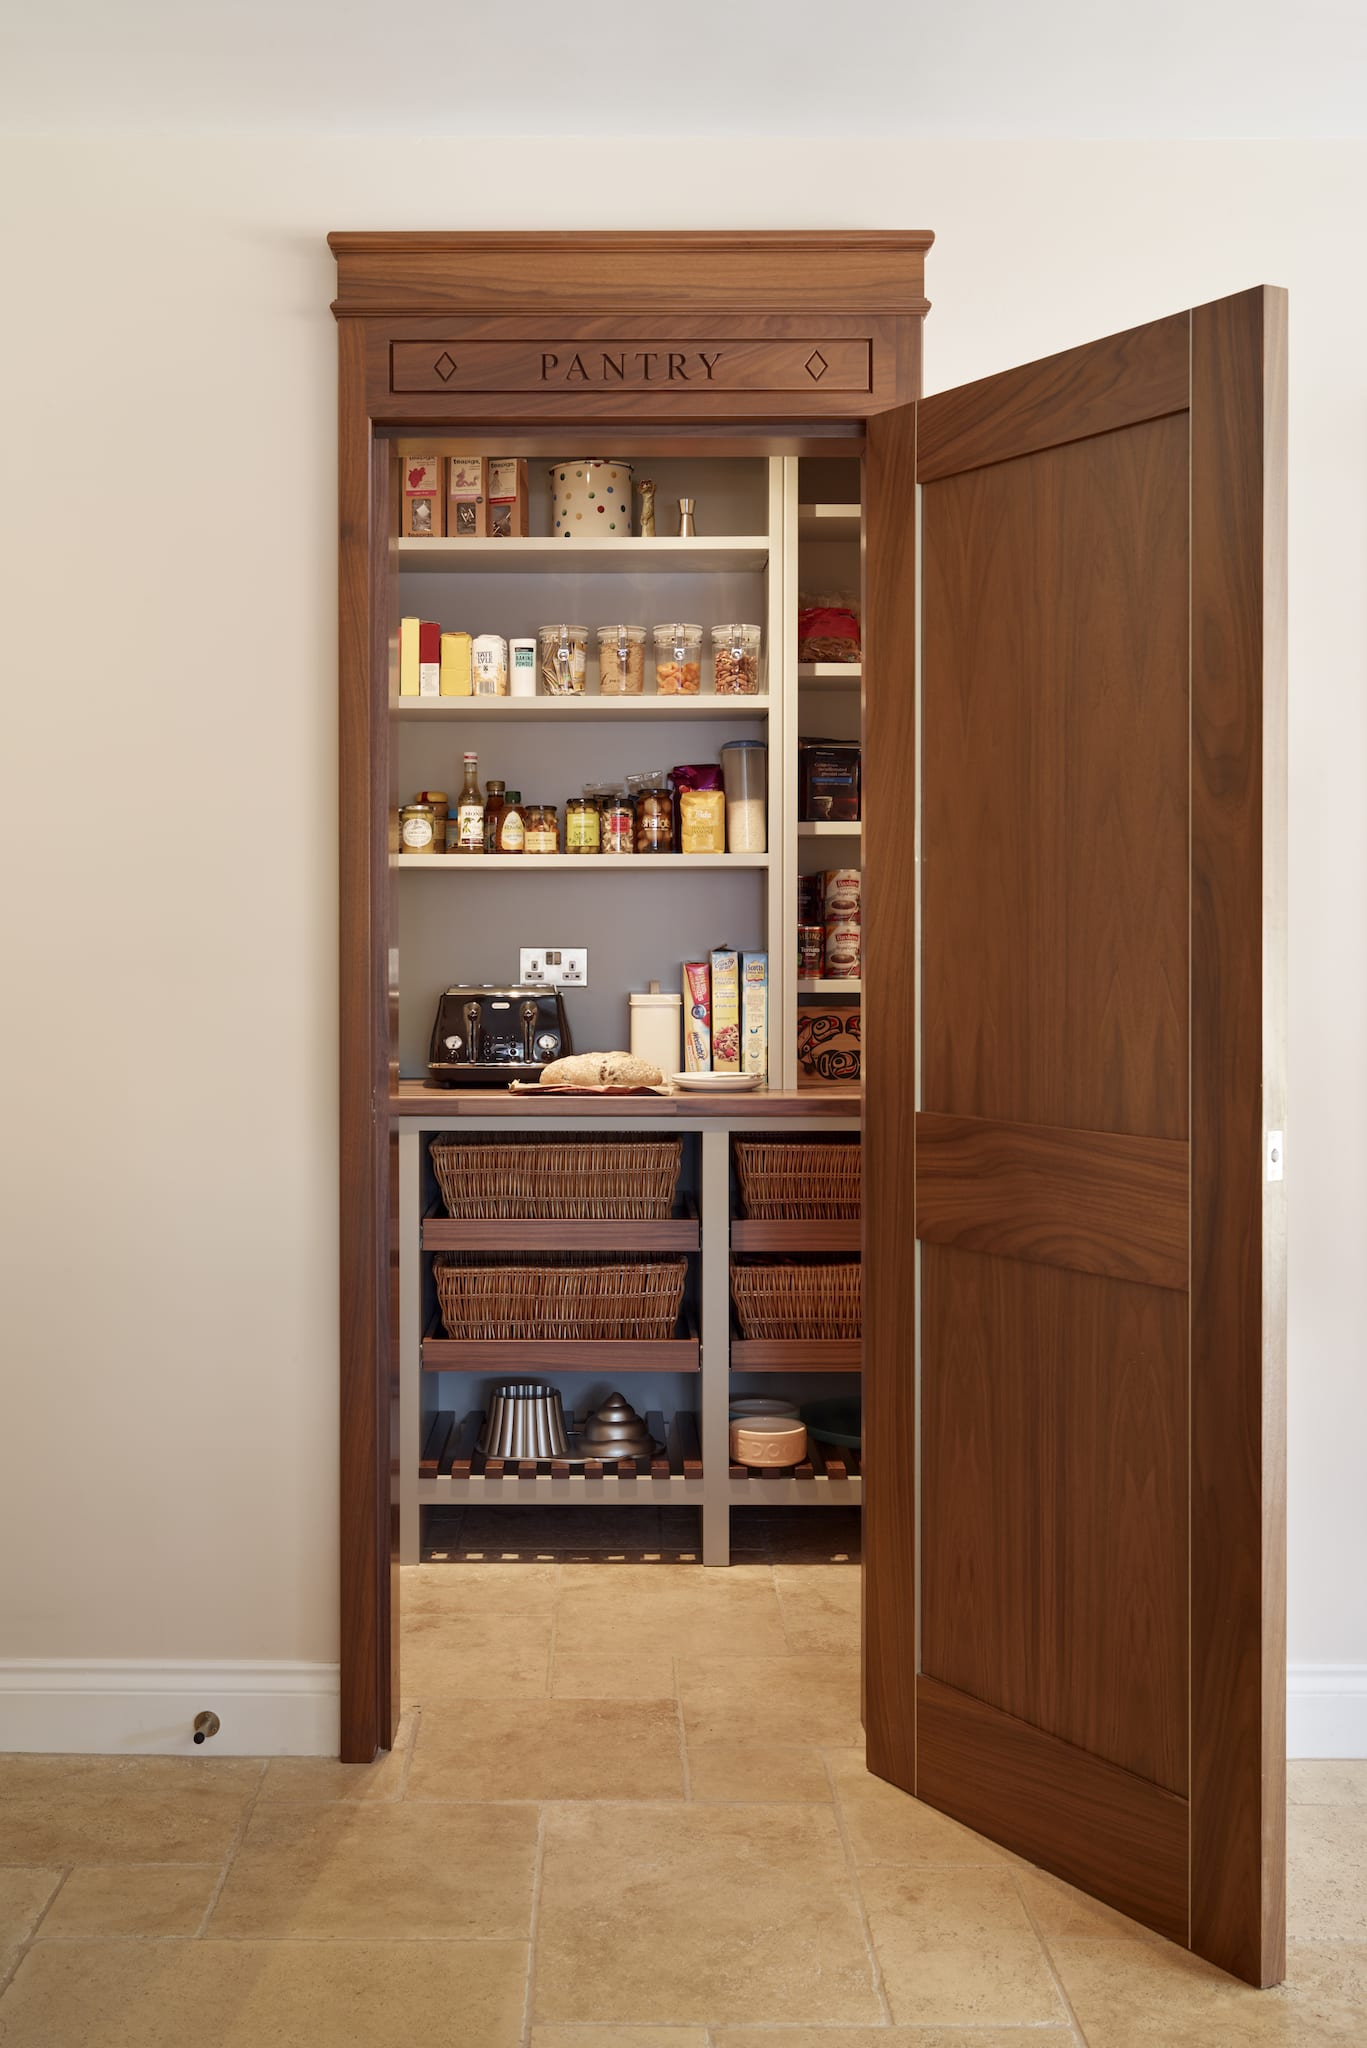 kitchen cabinets pantry scratch dent appliances storage the beauty of a or larder classic look this makes it popular choice that blends into shaker style seamlessly bespoke and creative